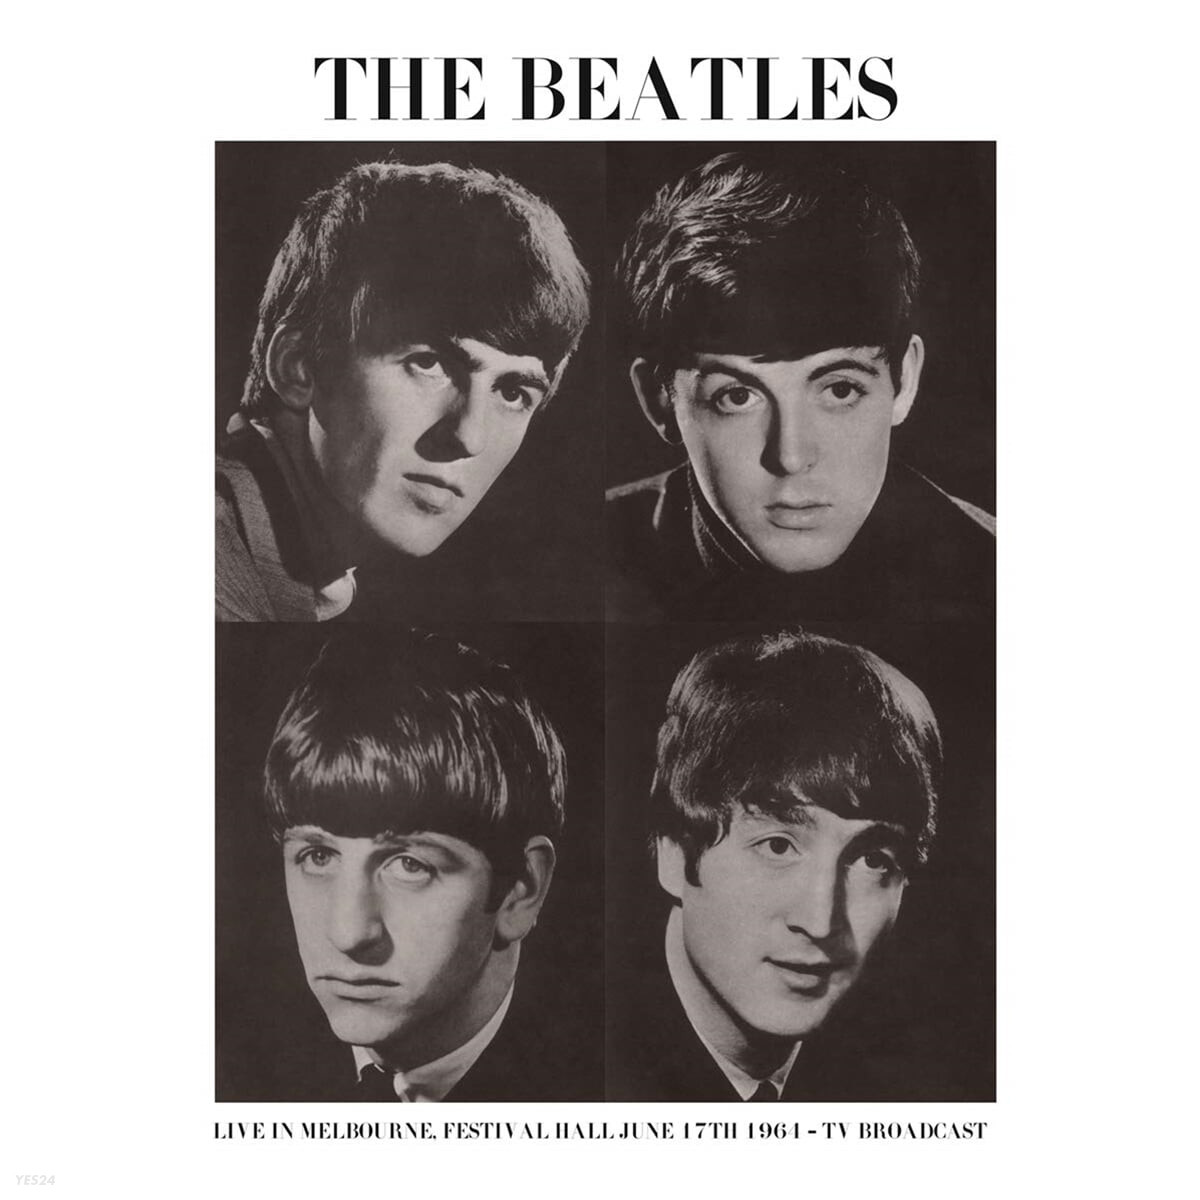 The Beatles (비틀즈) - Live In Melbourne, Festival Hall June 17th 1964 : TV Broadcast [LP]